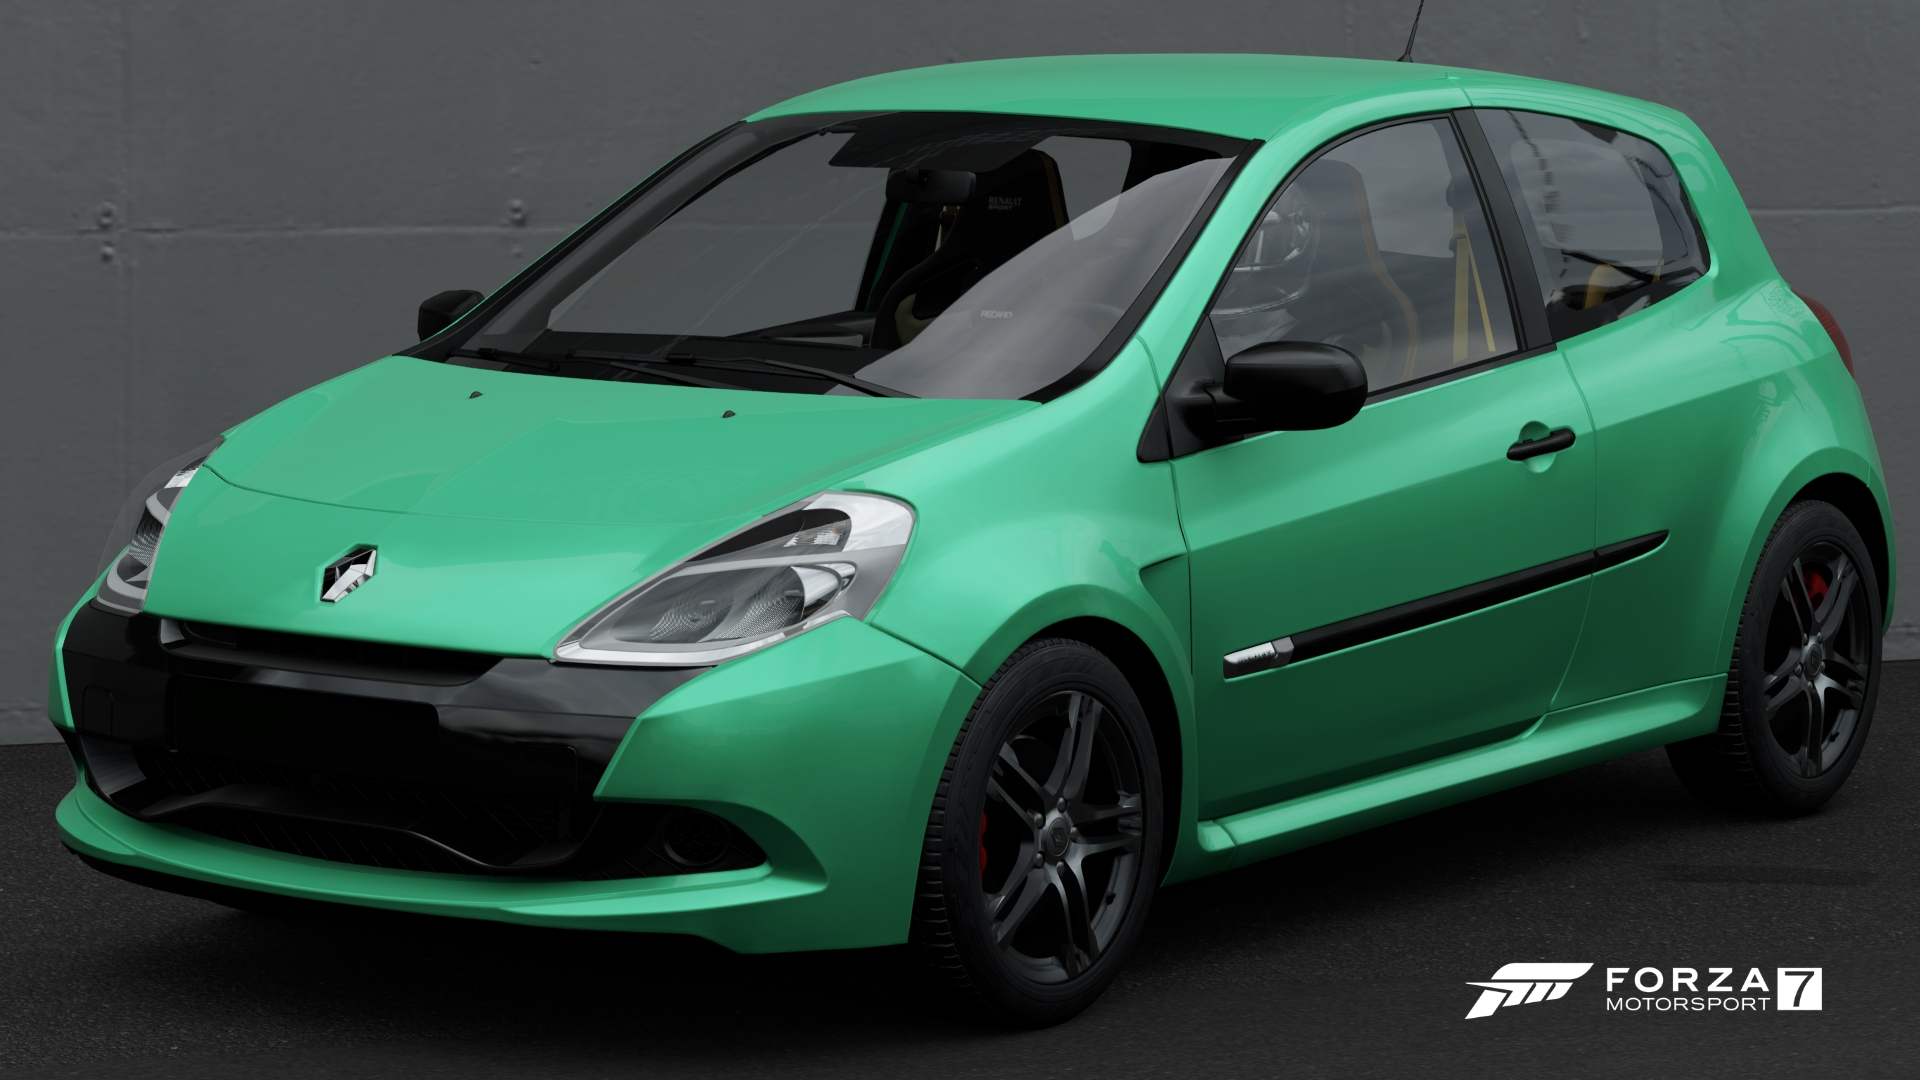 renault clio rs forza motorsport wiki fandom powered. Black Bedroom Furniture Sets. Home Design Ideas